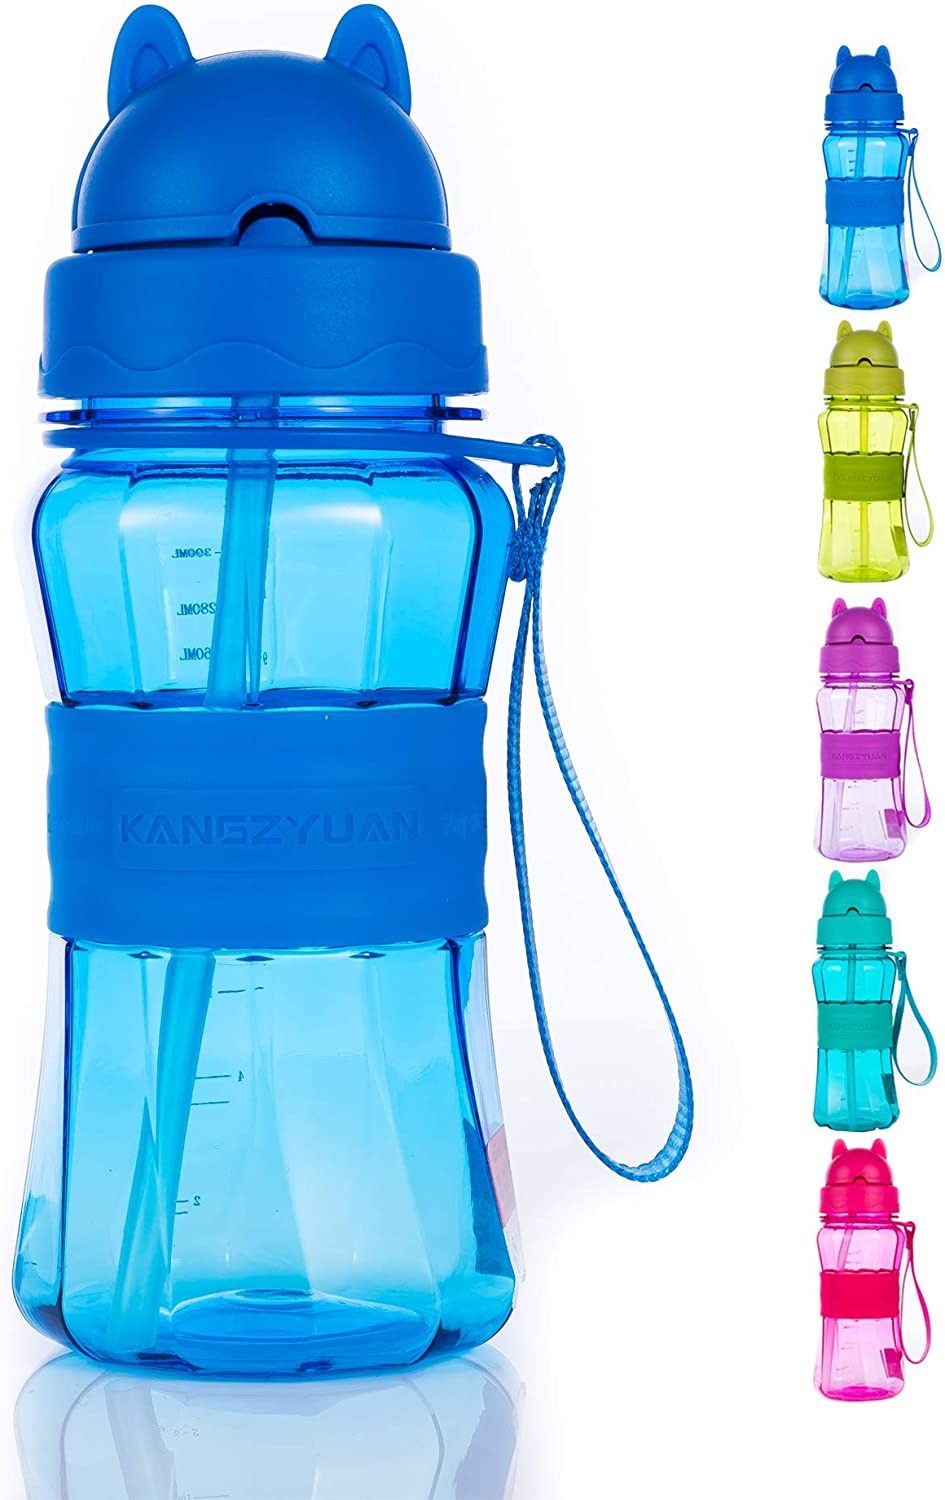 Water Bottle for Kids with Straw, 12oz, BPA Free, Leak Proof, Carrying Strap, Cute Cat Face Lid and Anti-skid Body Design, Lightweight and Kids Sized for Your Boys, Girls and School Students (Blue).